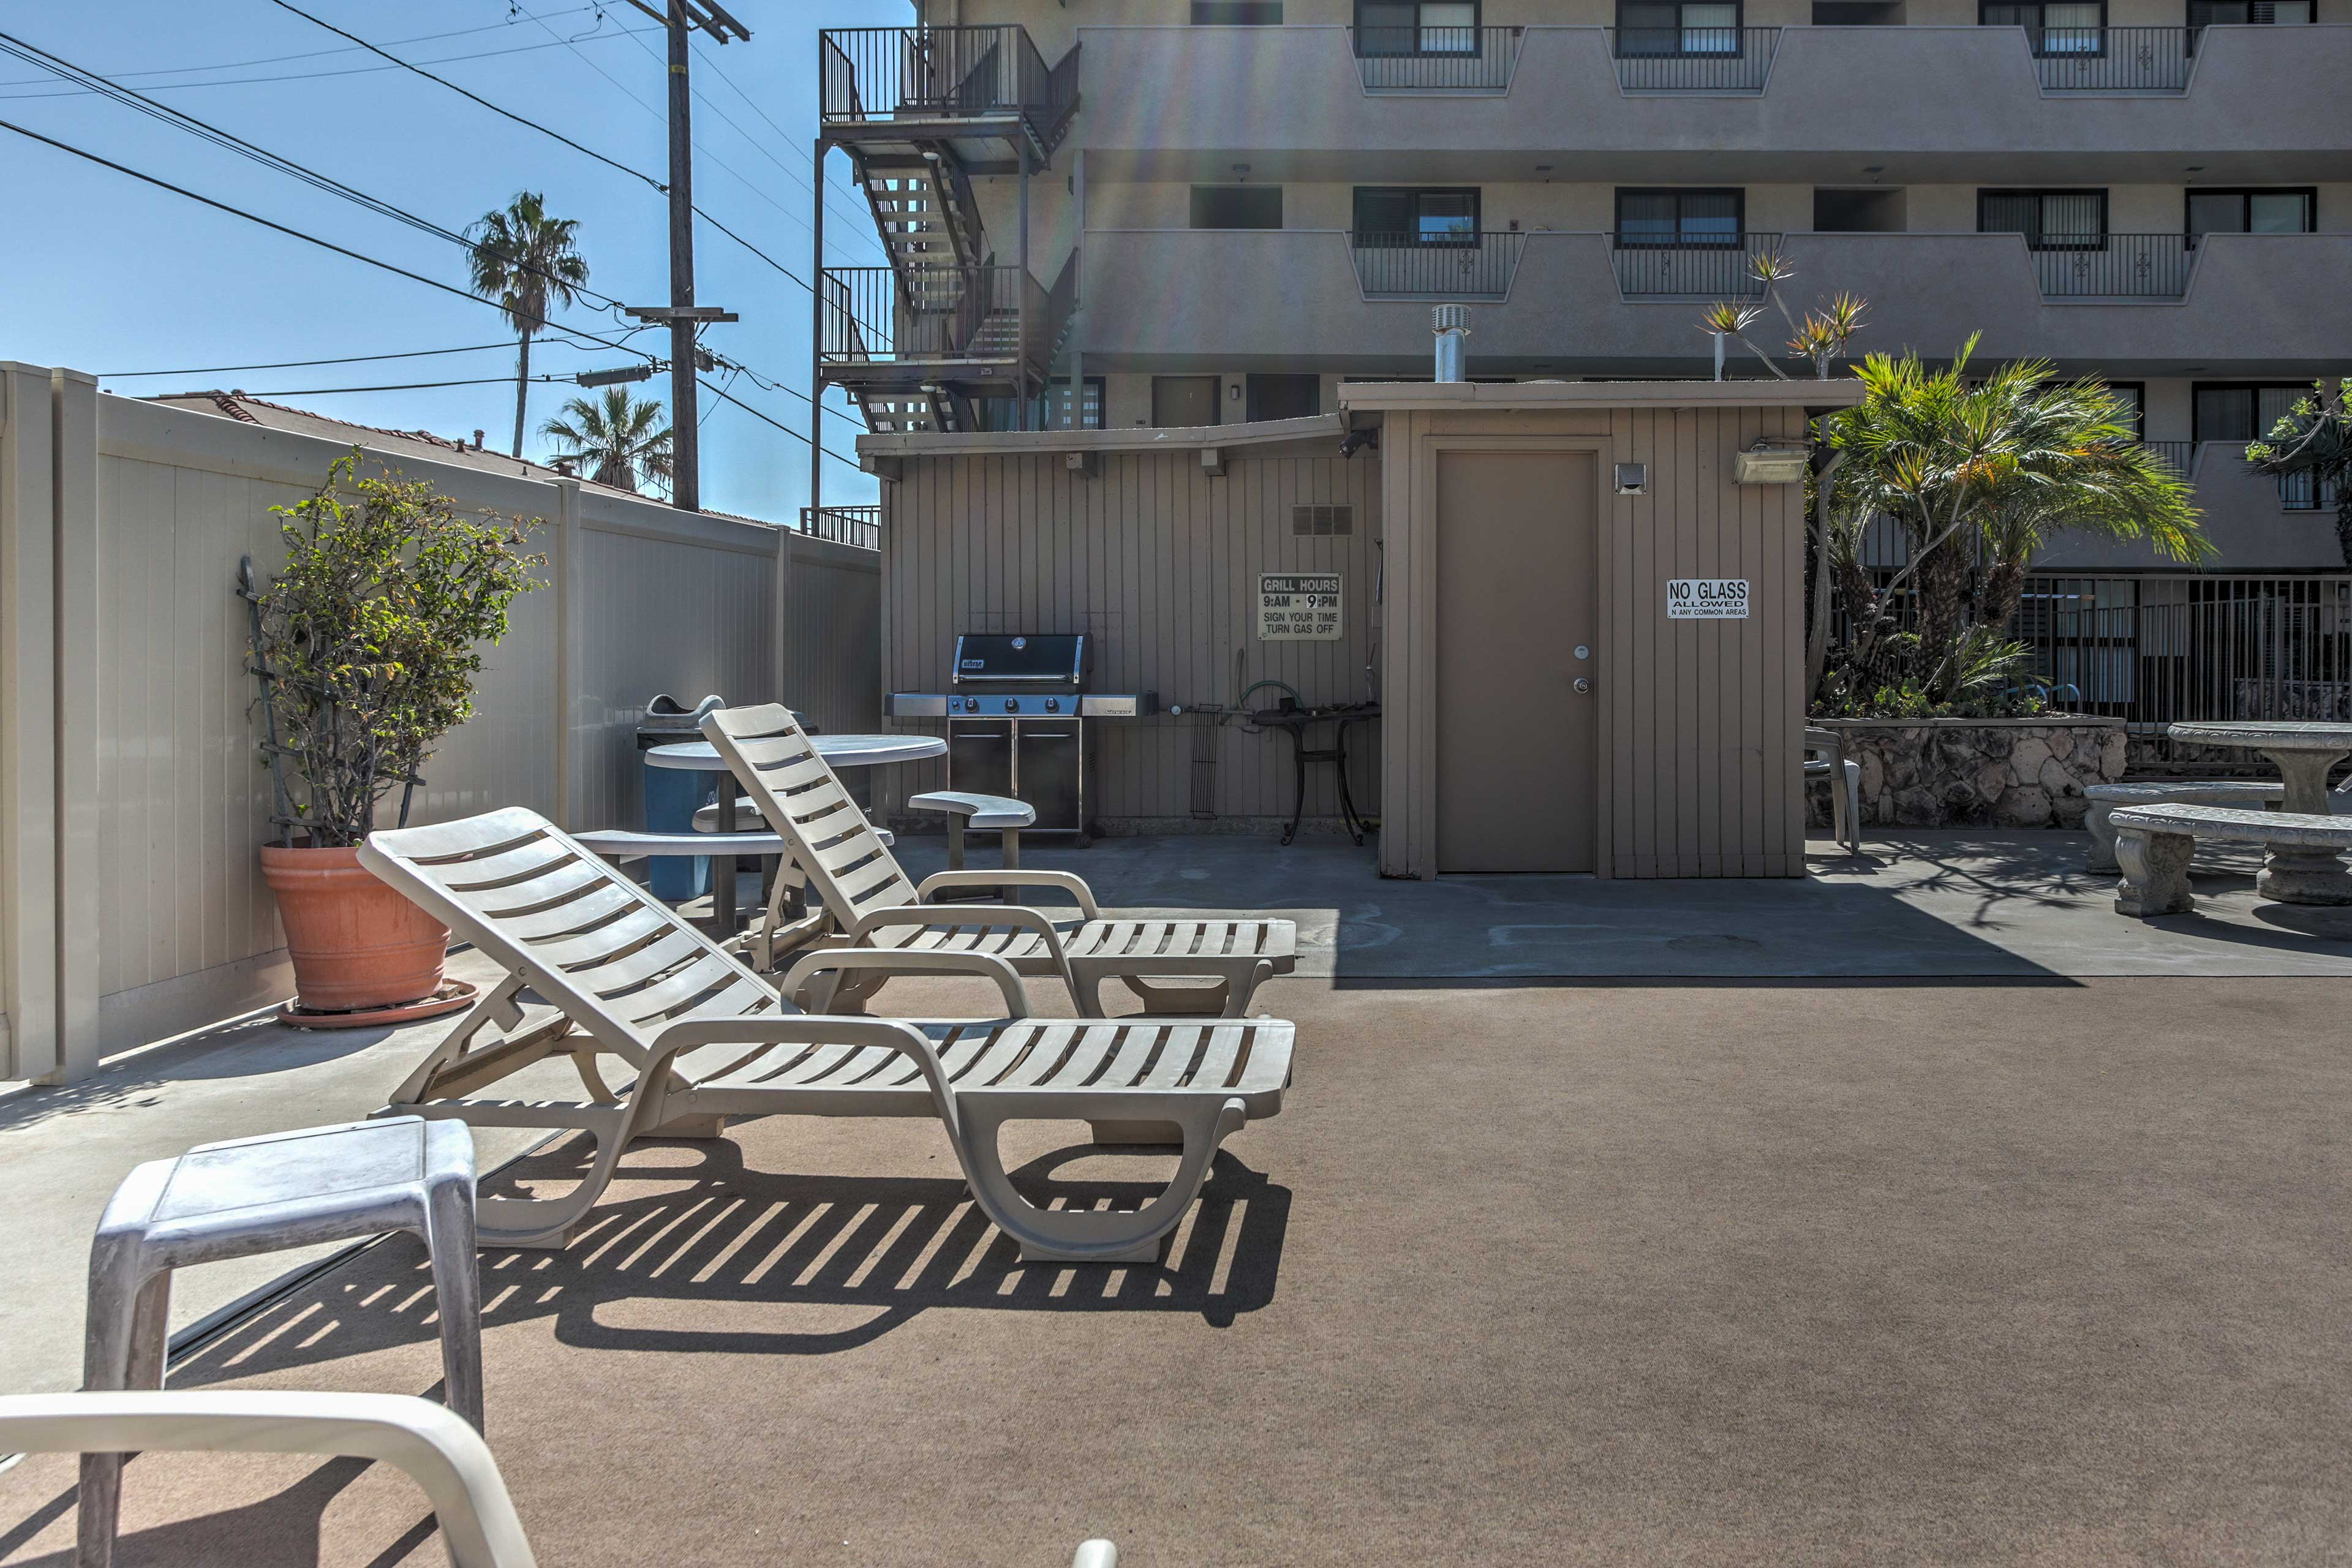 Claim a lounge chair and soak up some San Diego sun by the community pool.